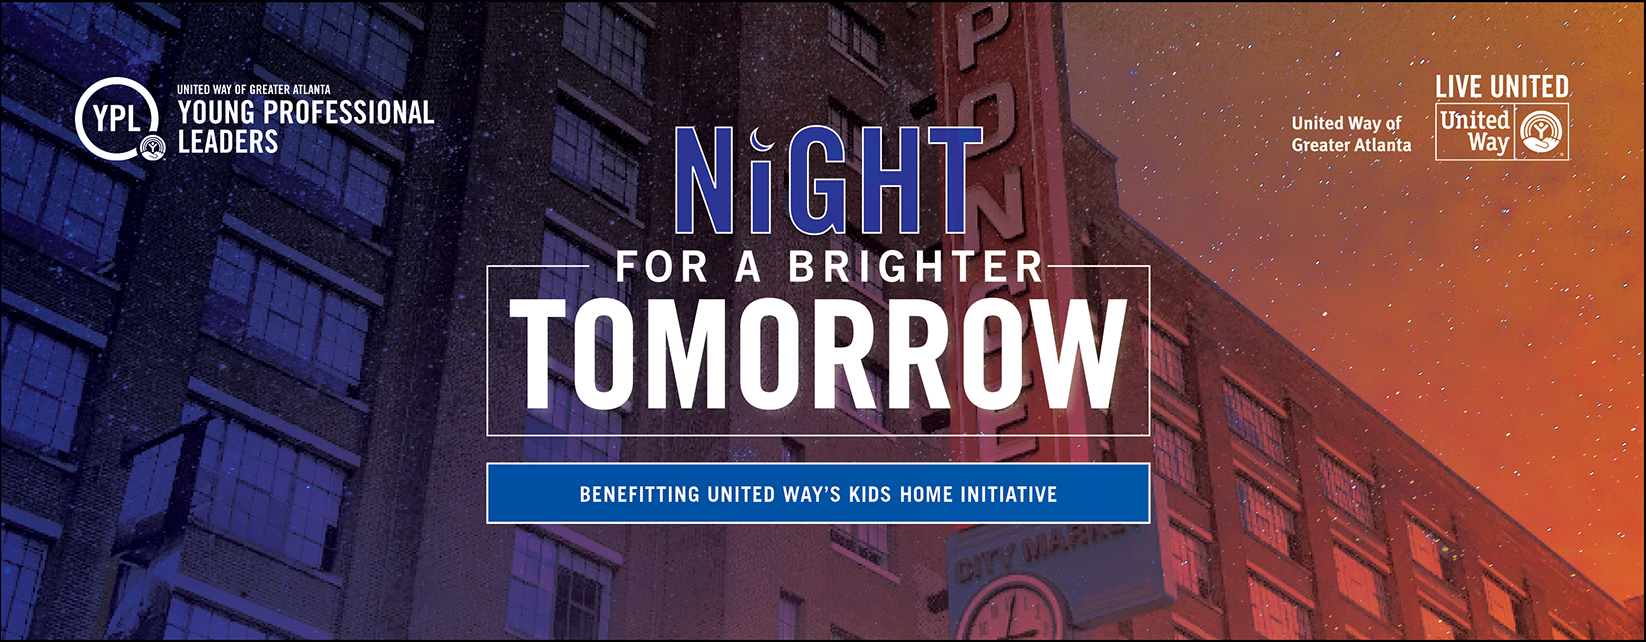 2019 - YPL - Night for a Brighter Tomorrow